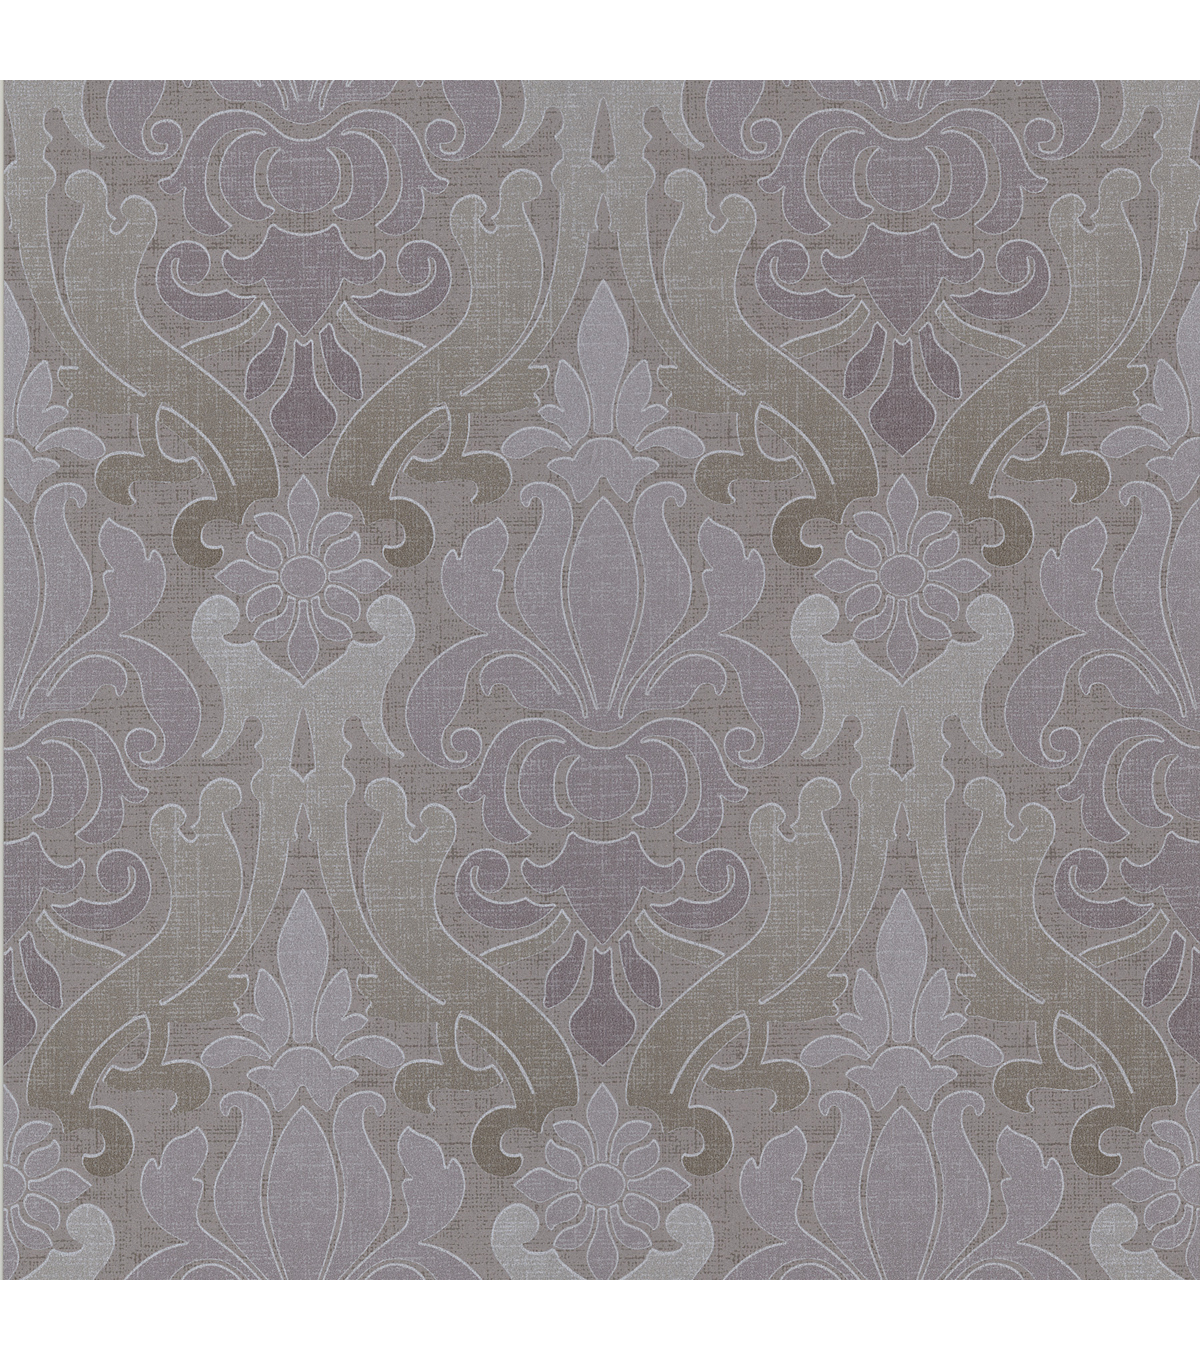 Aquitaine Purple Nouveau Damask  Wallpaper Sample